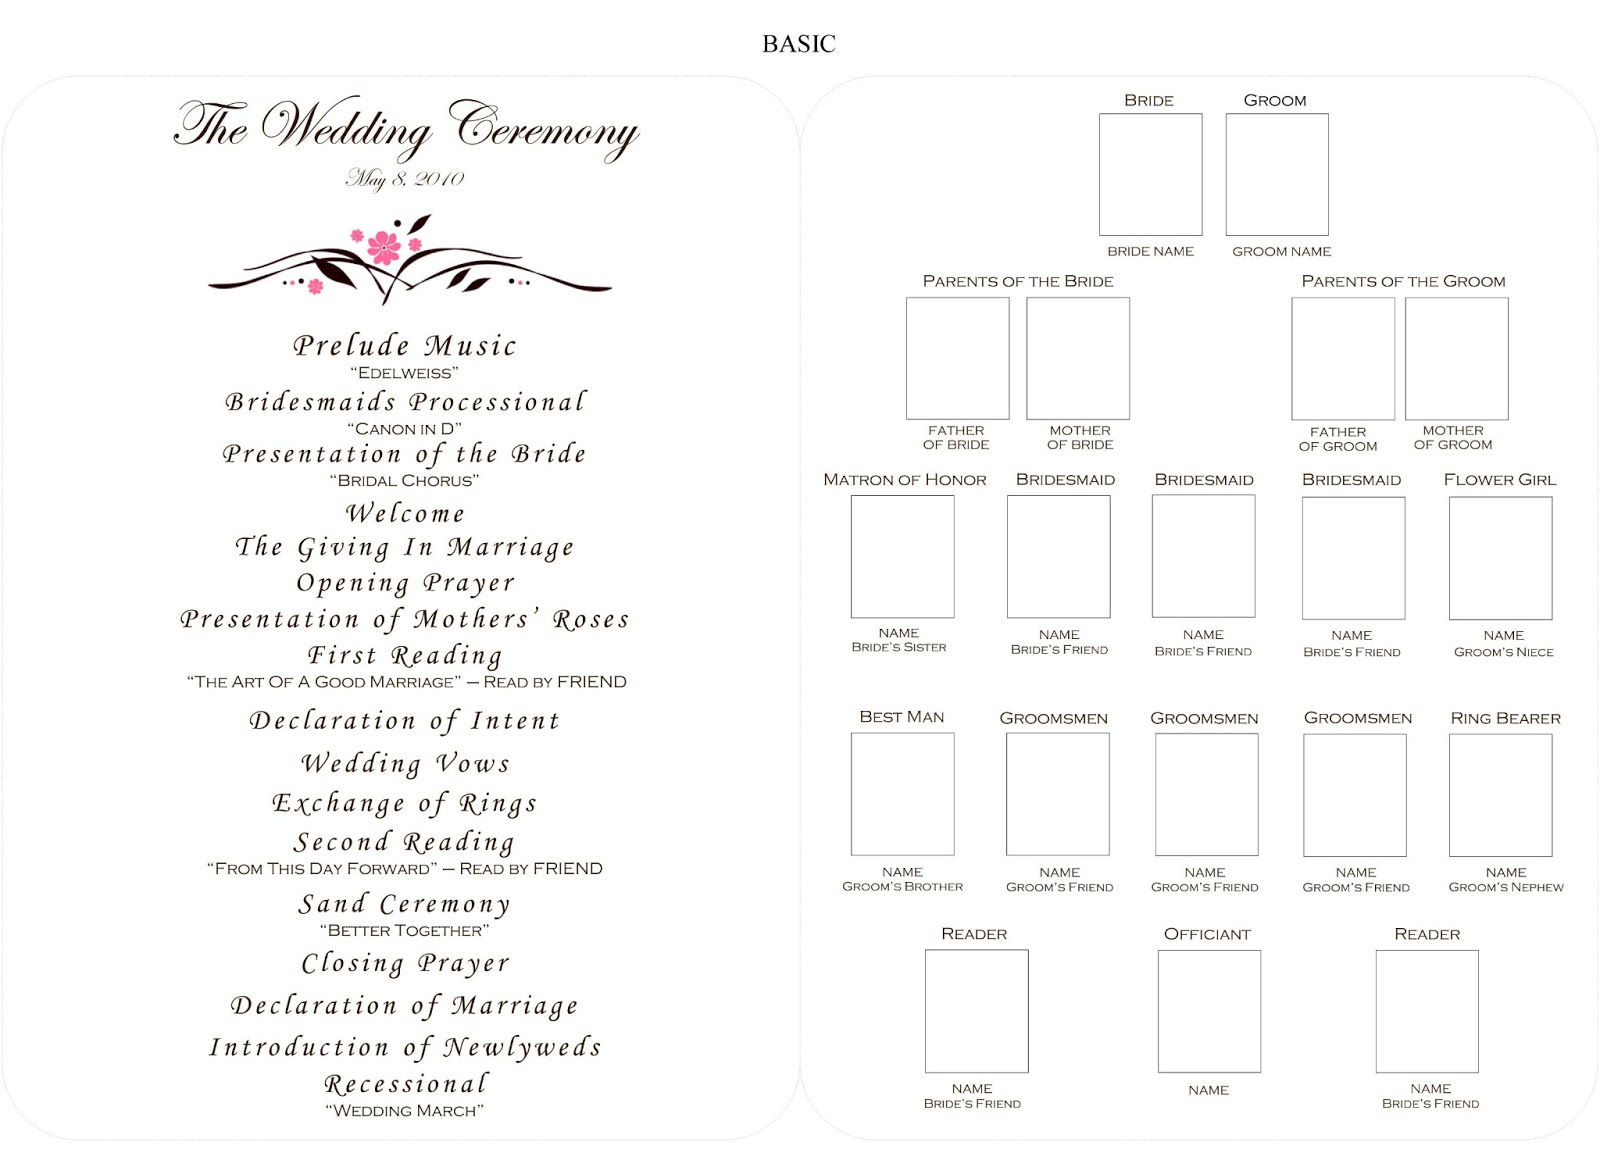 wedding ceremony program outline template